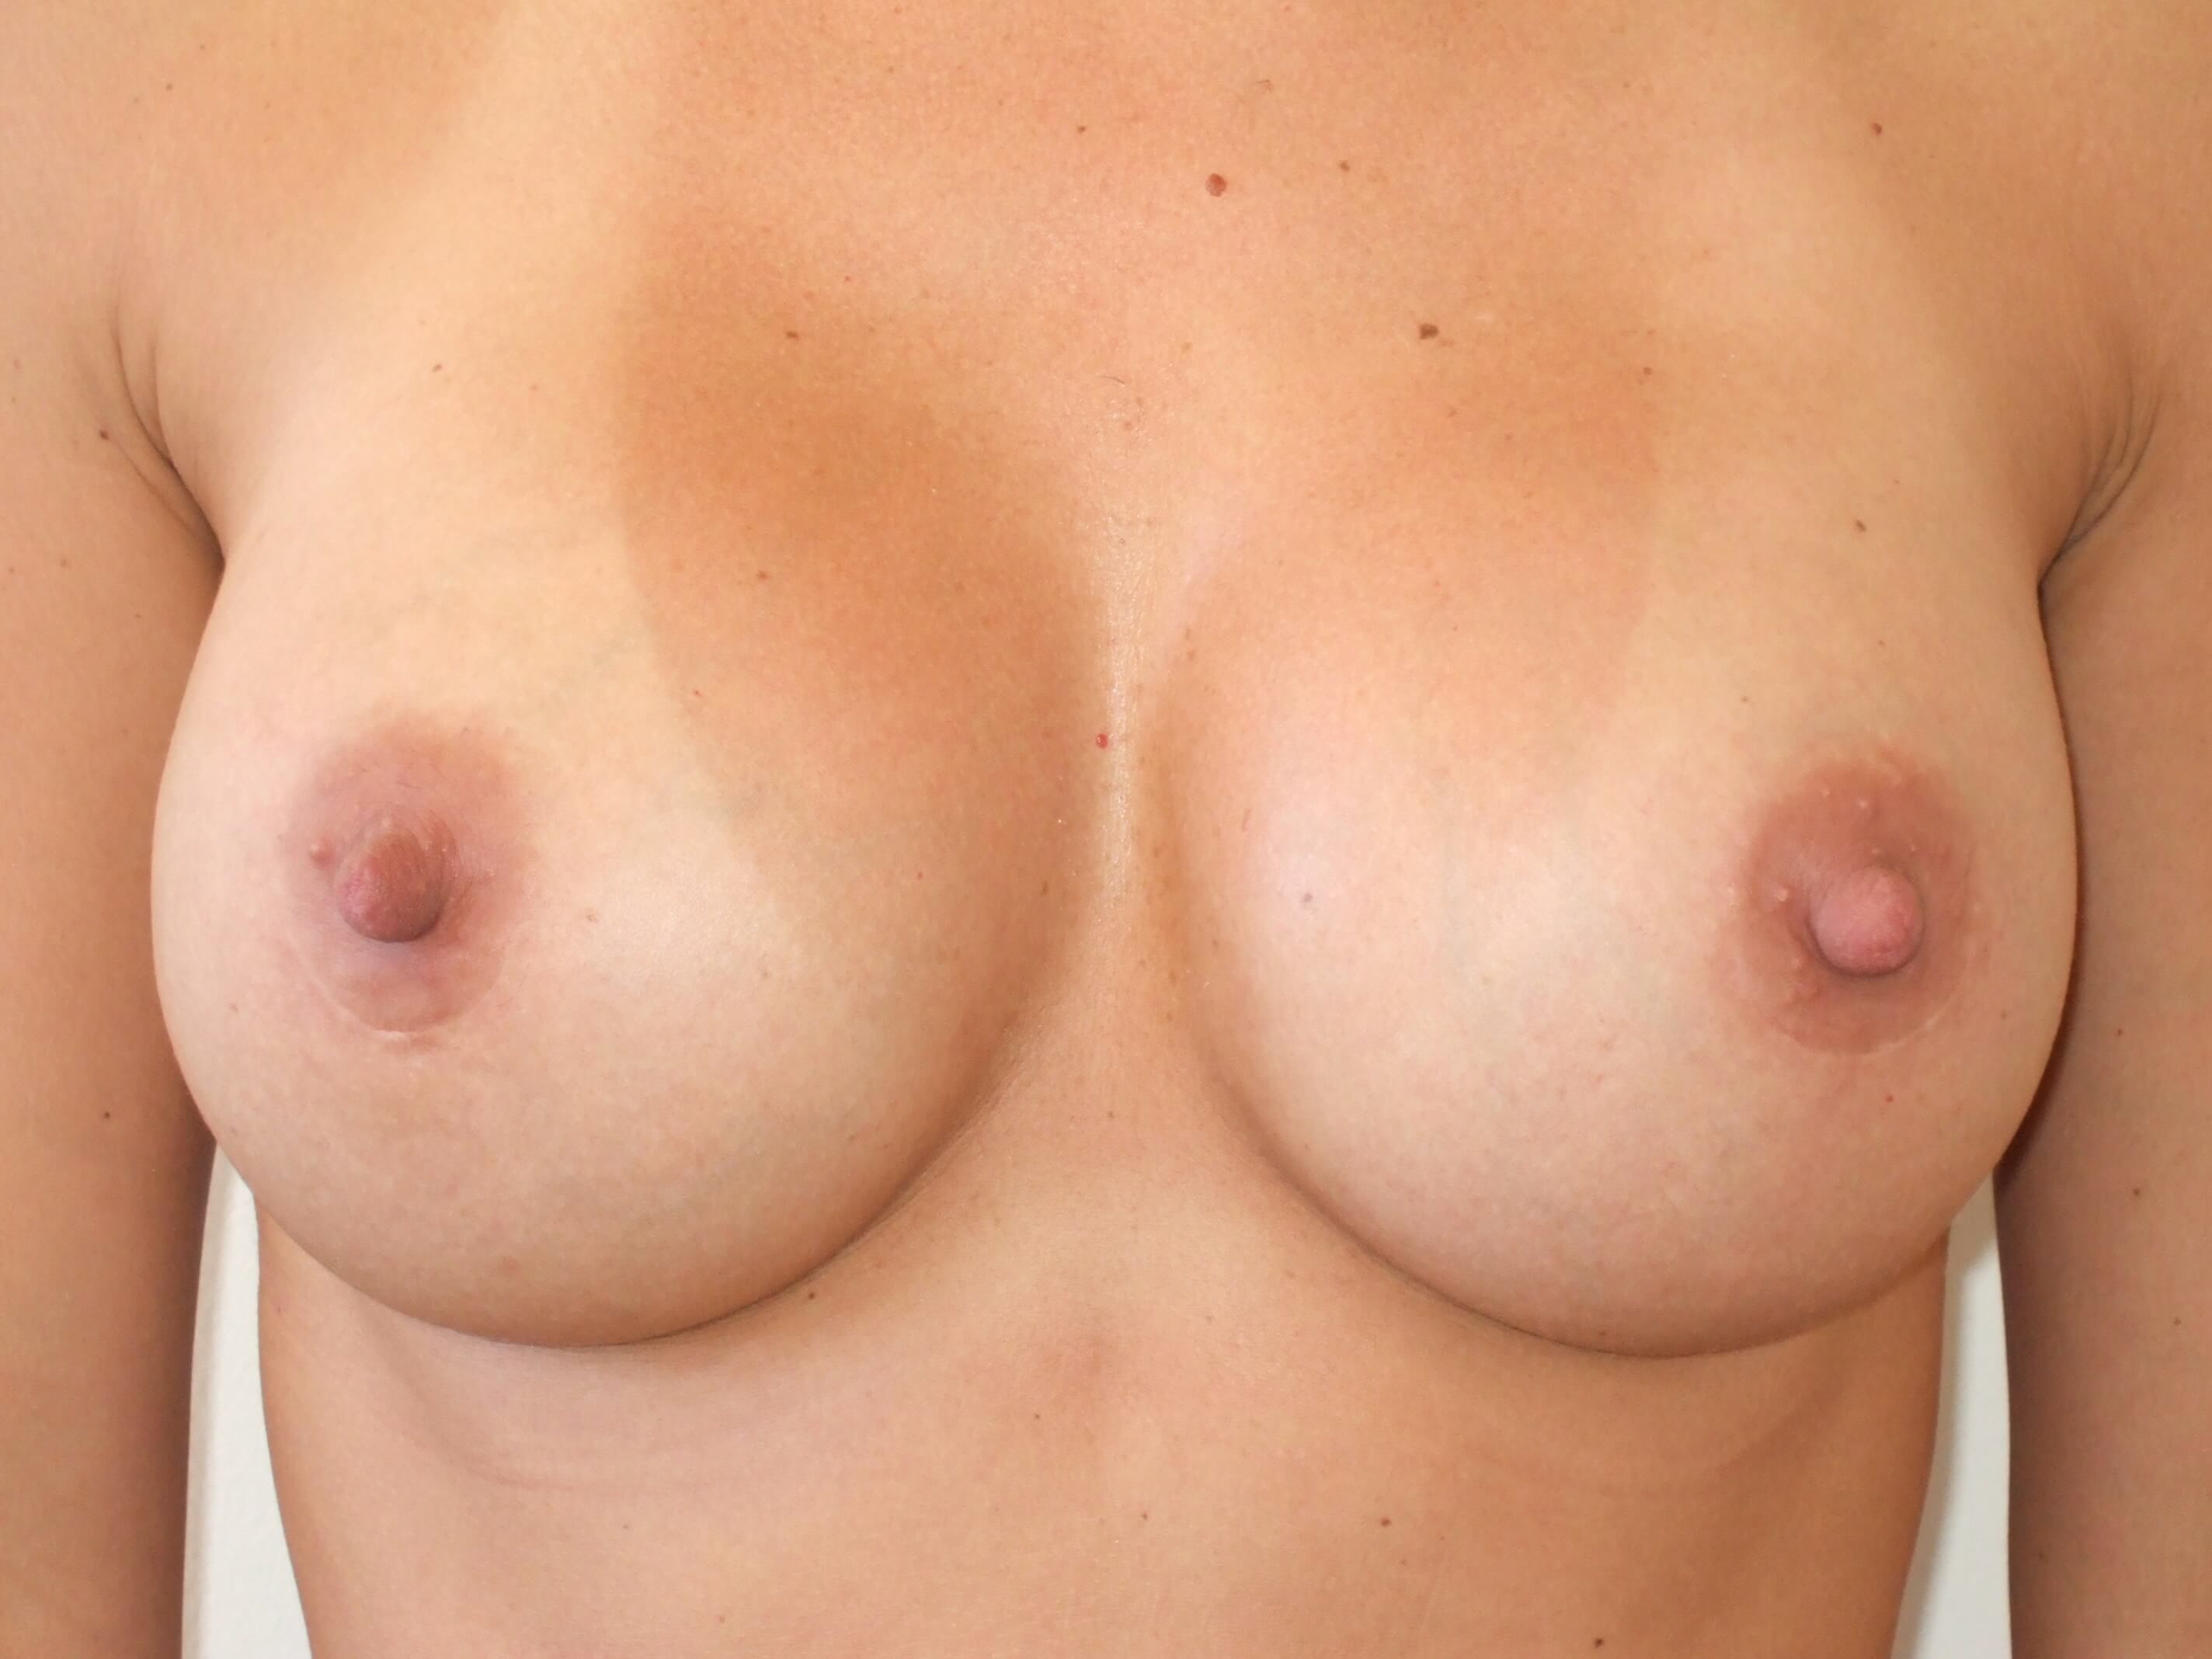 Breast Augmentation: Front After Implant